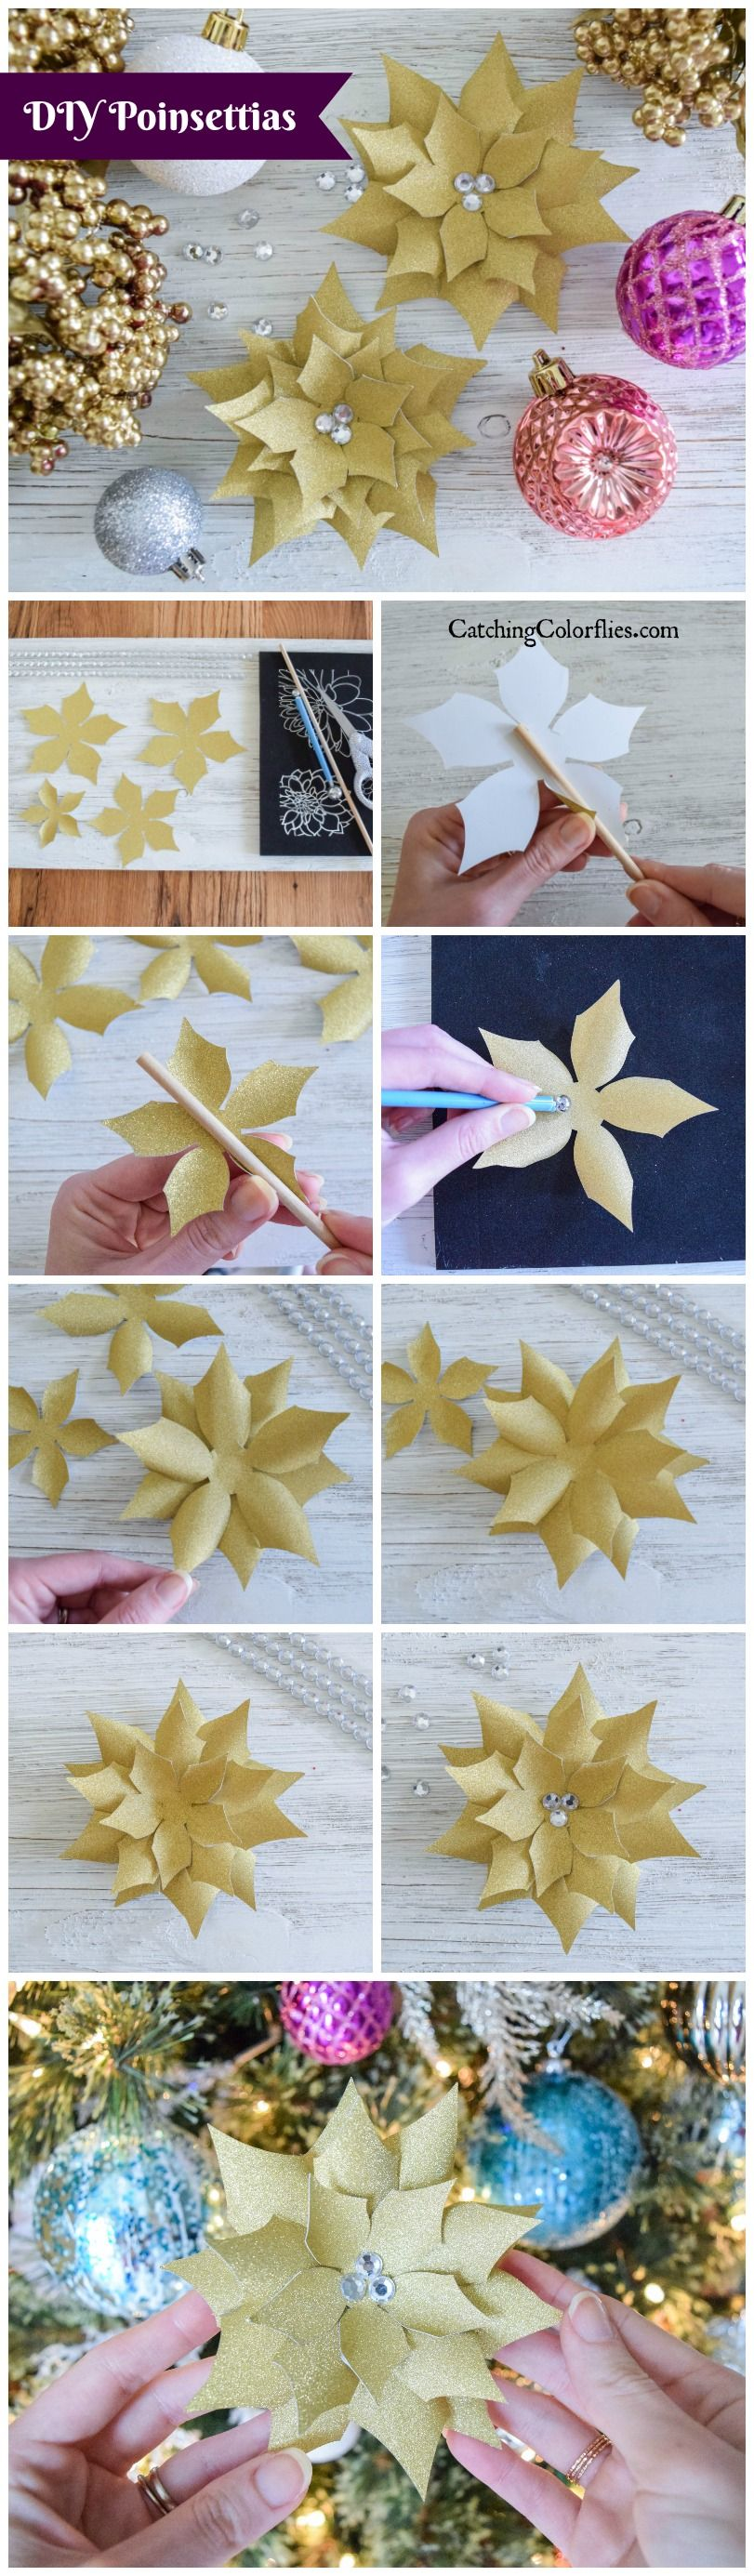 how to make poinsettia from paper